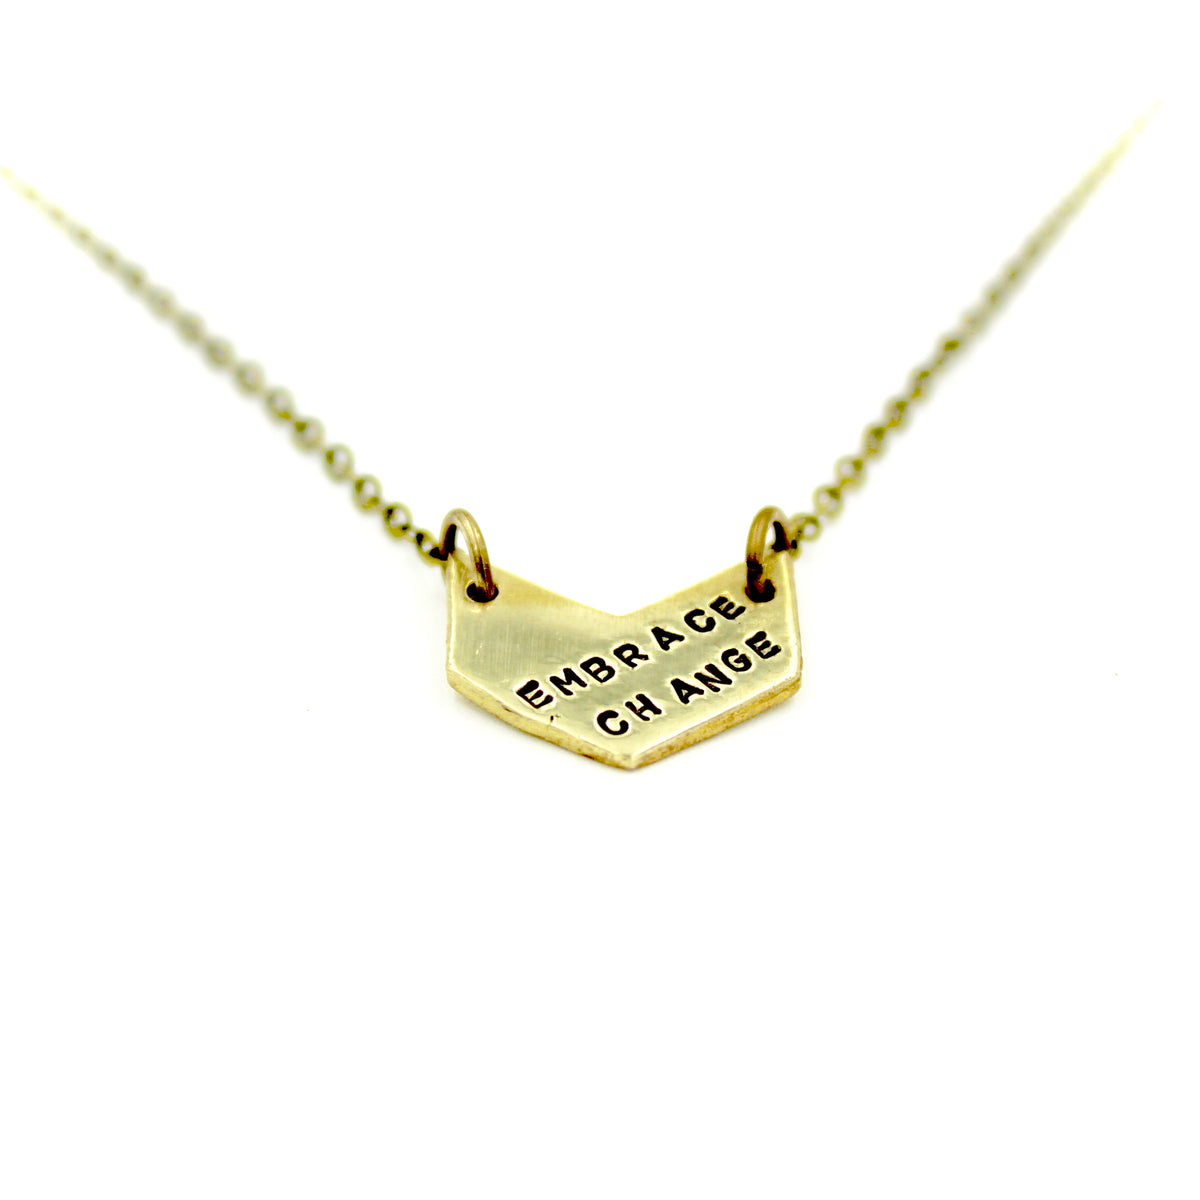 Embrace Change Necklace